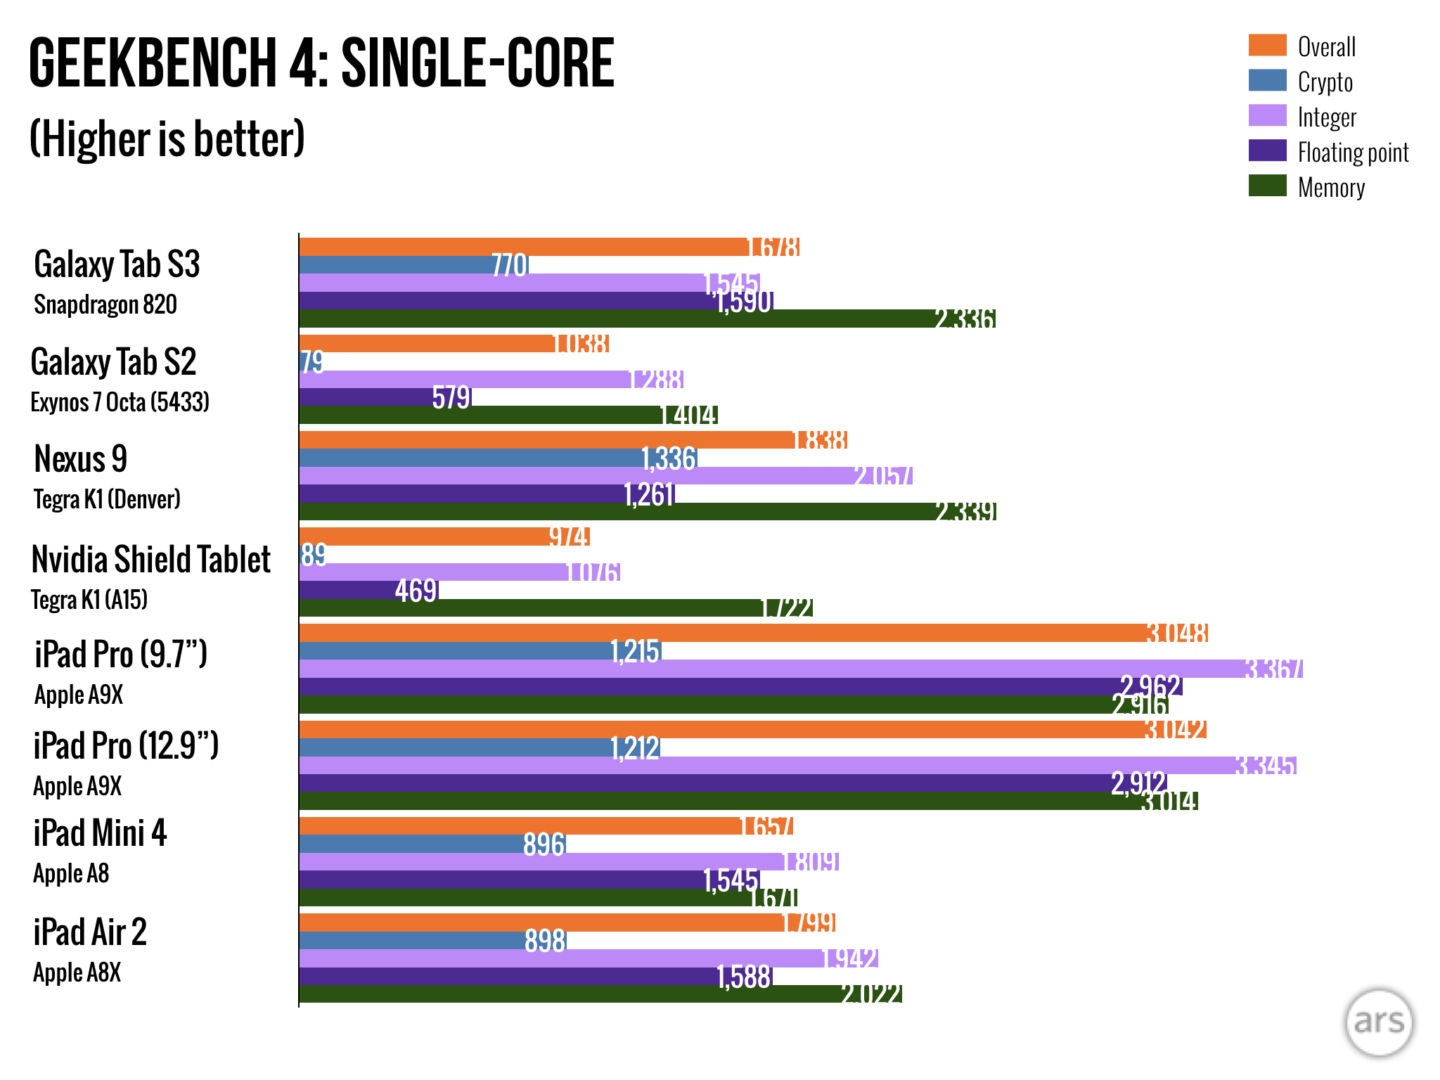 https://cdn.arstechnica.net/wp-content/uploads/2017/03/tabs3_benchmarks_GEEK.001-1440x1080.jpeg